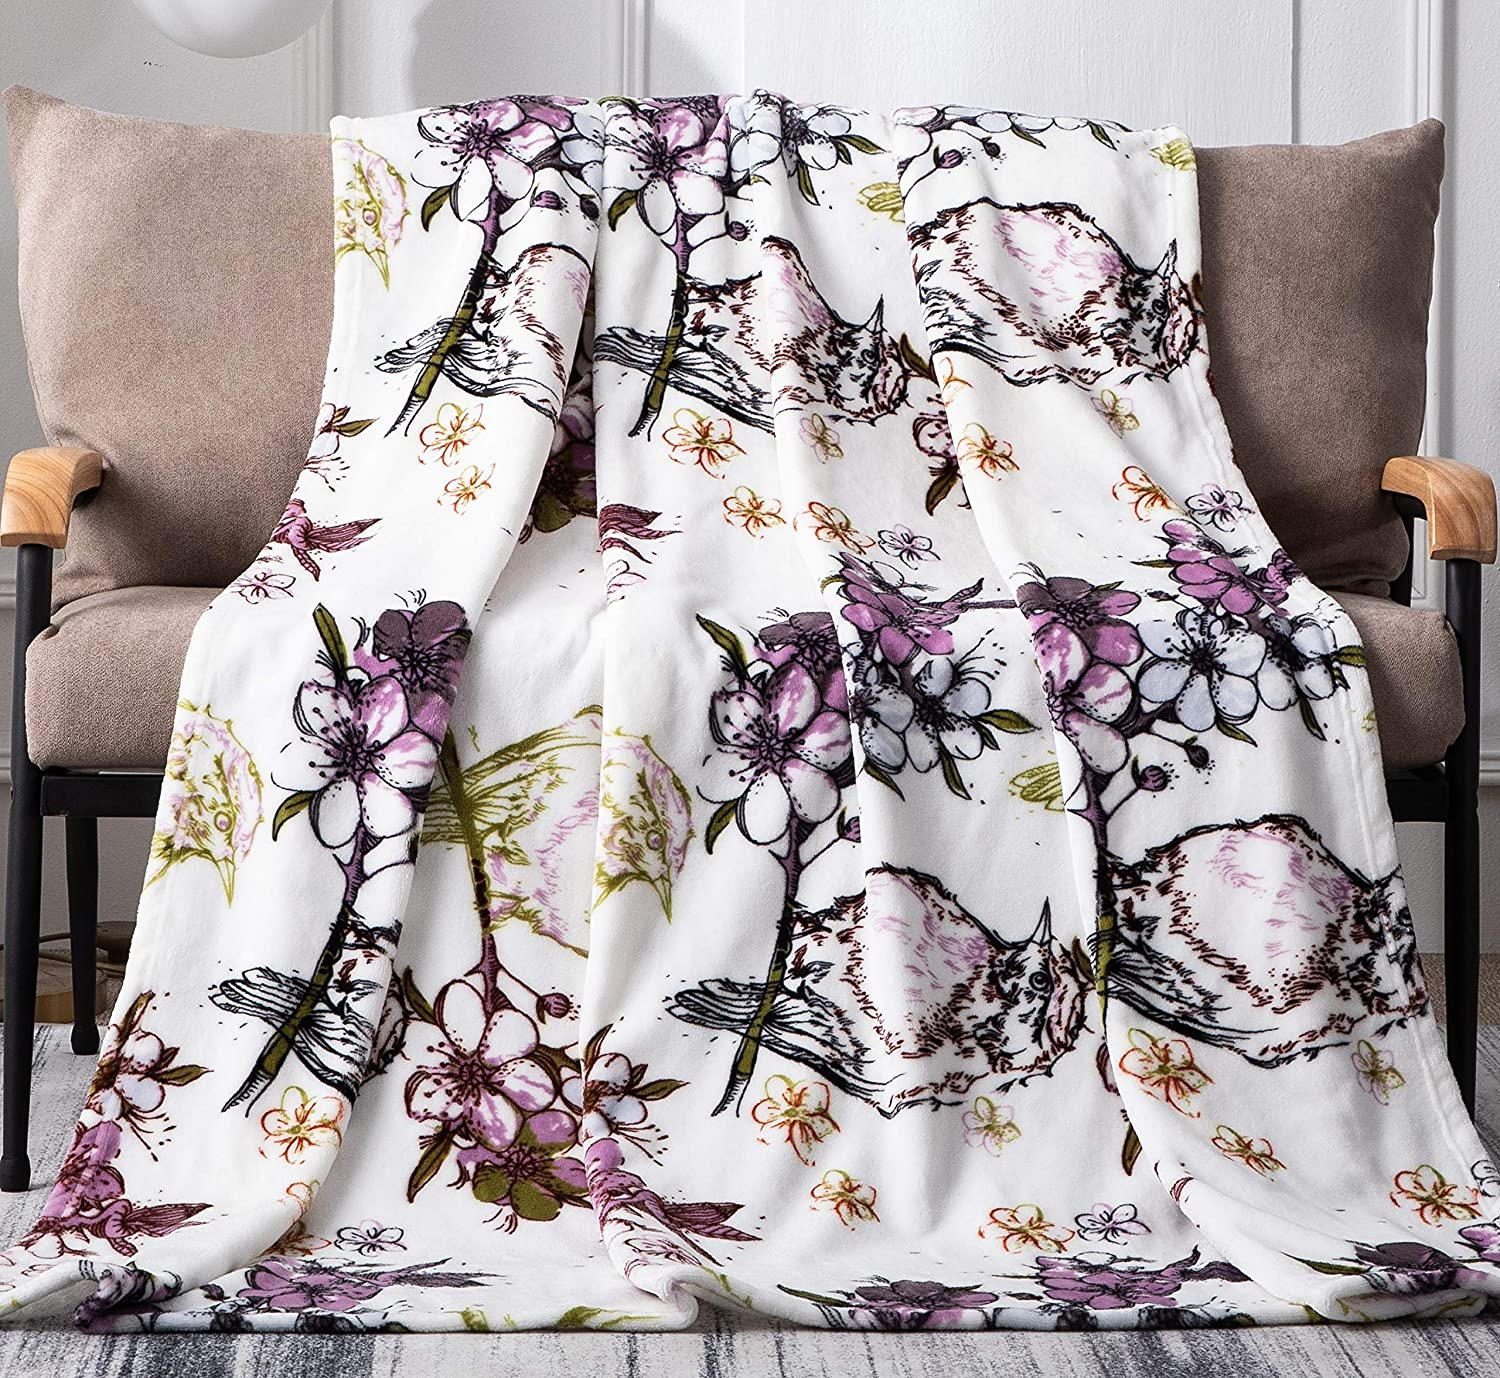 "DaDa Bedding Soft Fleece Throw Blanket - Plush Warm Animal Lover House Warming Decor Gift Idea While TV Blossom Wonderland Floral Spring Time Birds - Elegant Orchid Purple & Olive Green - 50"" x 60"""